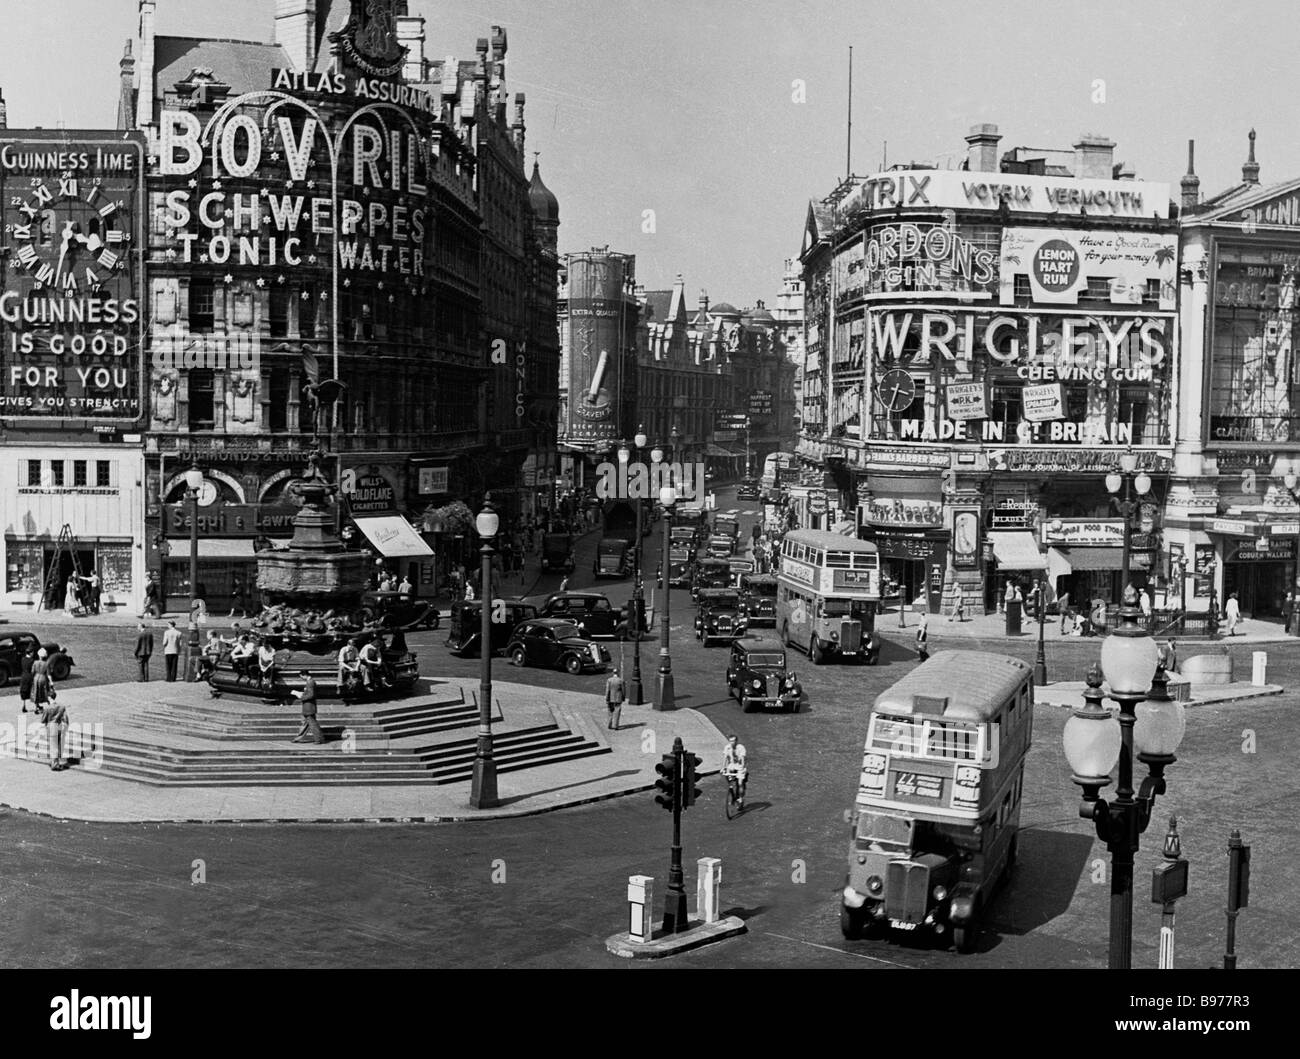 Iconic tourist attraction Piccadilly Circus as seen in the 1950s, a working traffic roundabout, surrounded by advertising - Stock Image